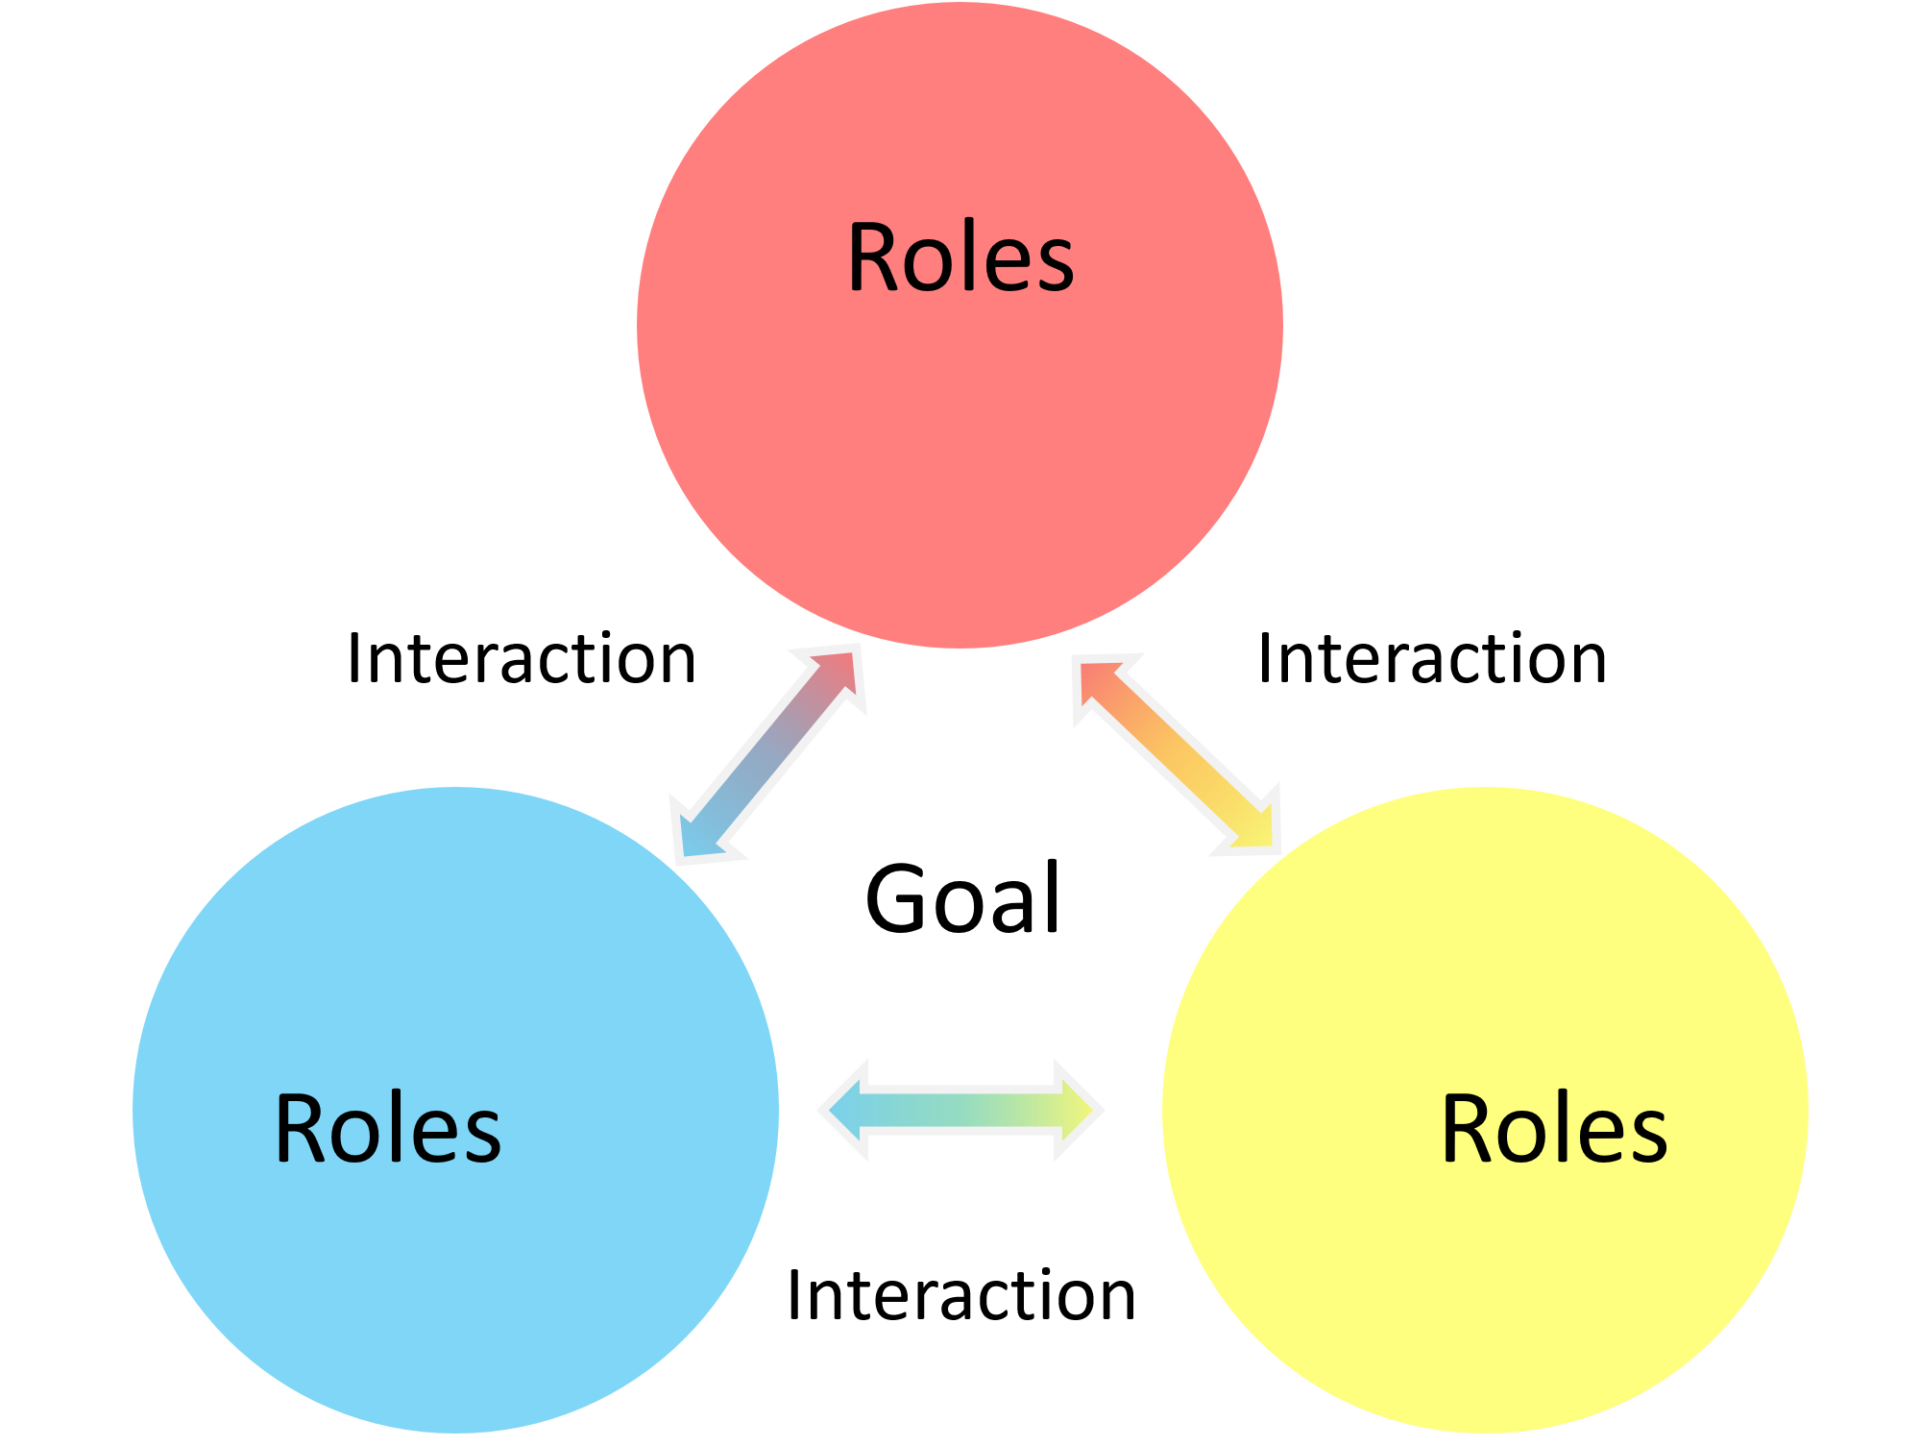 """Graphic Organizer with 3 circles with 3 primal colors and the word """"Roles"""" inside them. 3 double-headed arrows with the word interaction connect them. The word goal is in the center."""